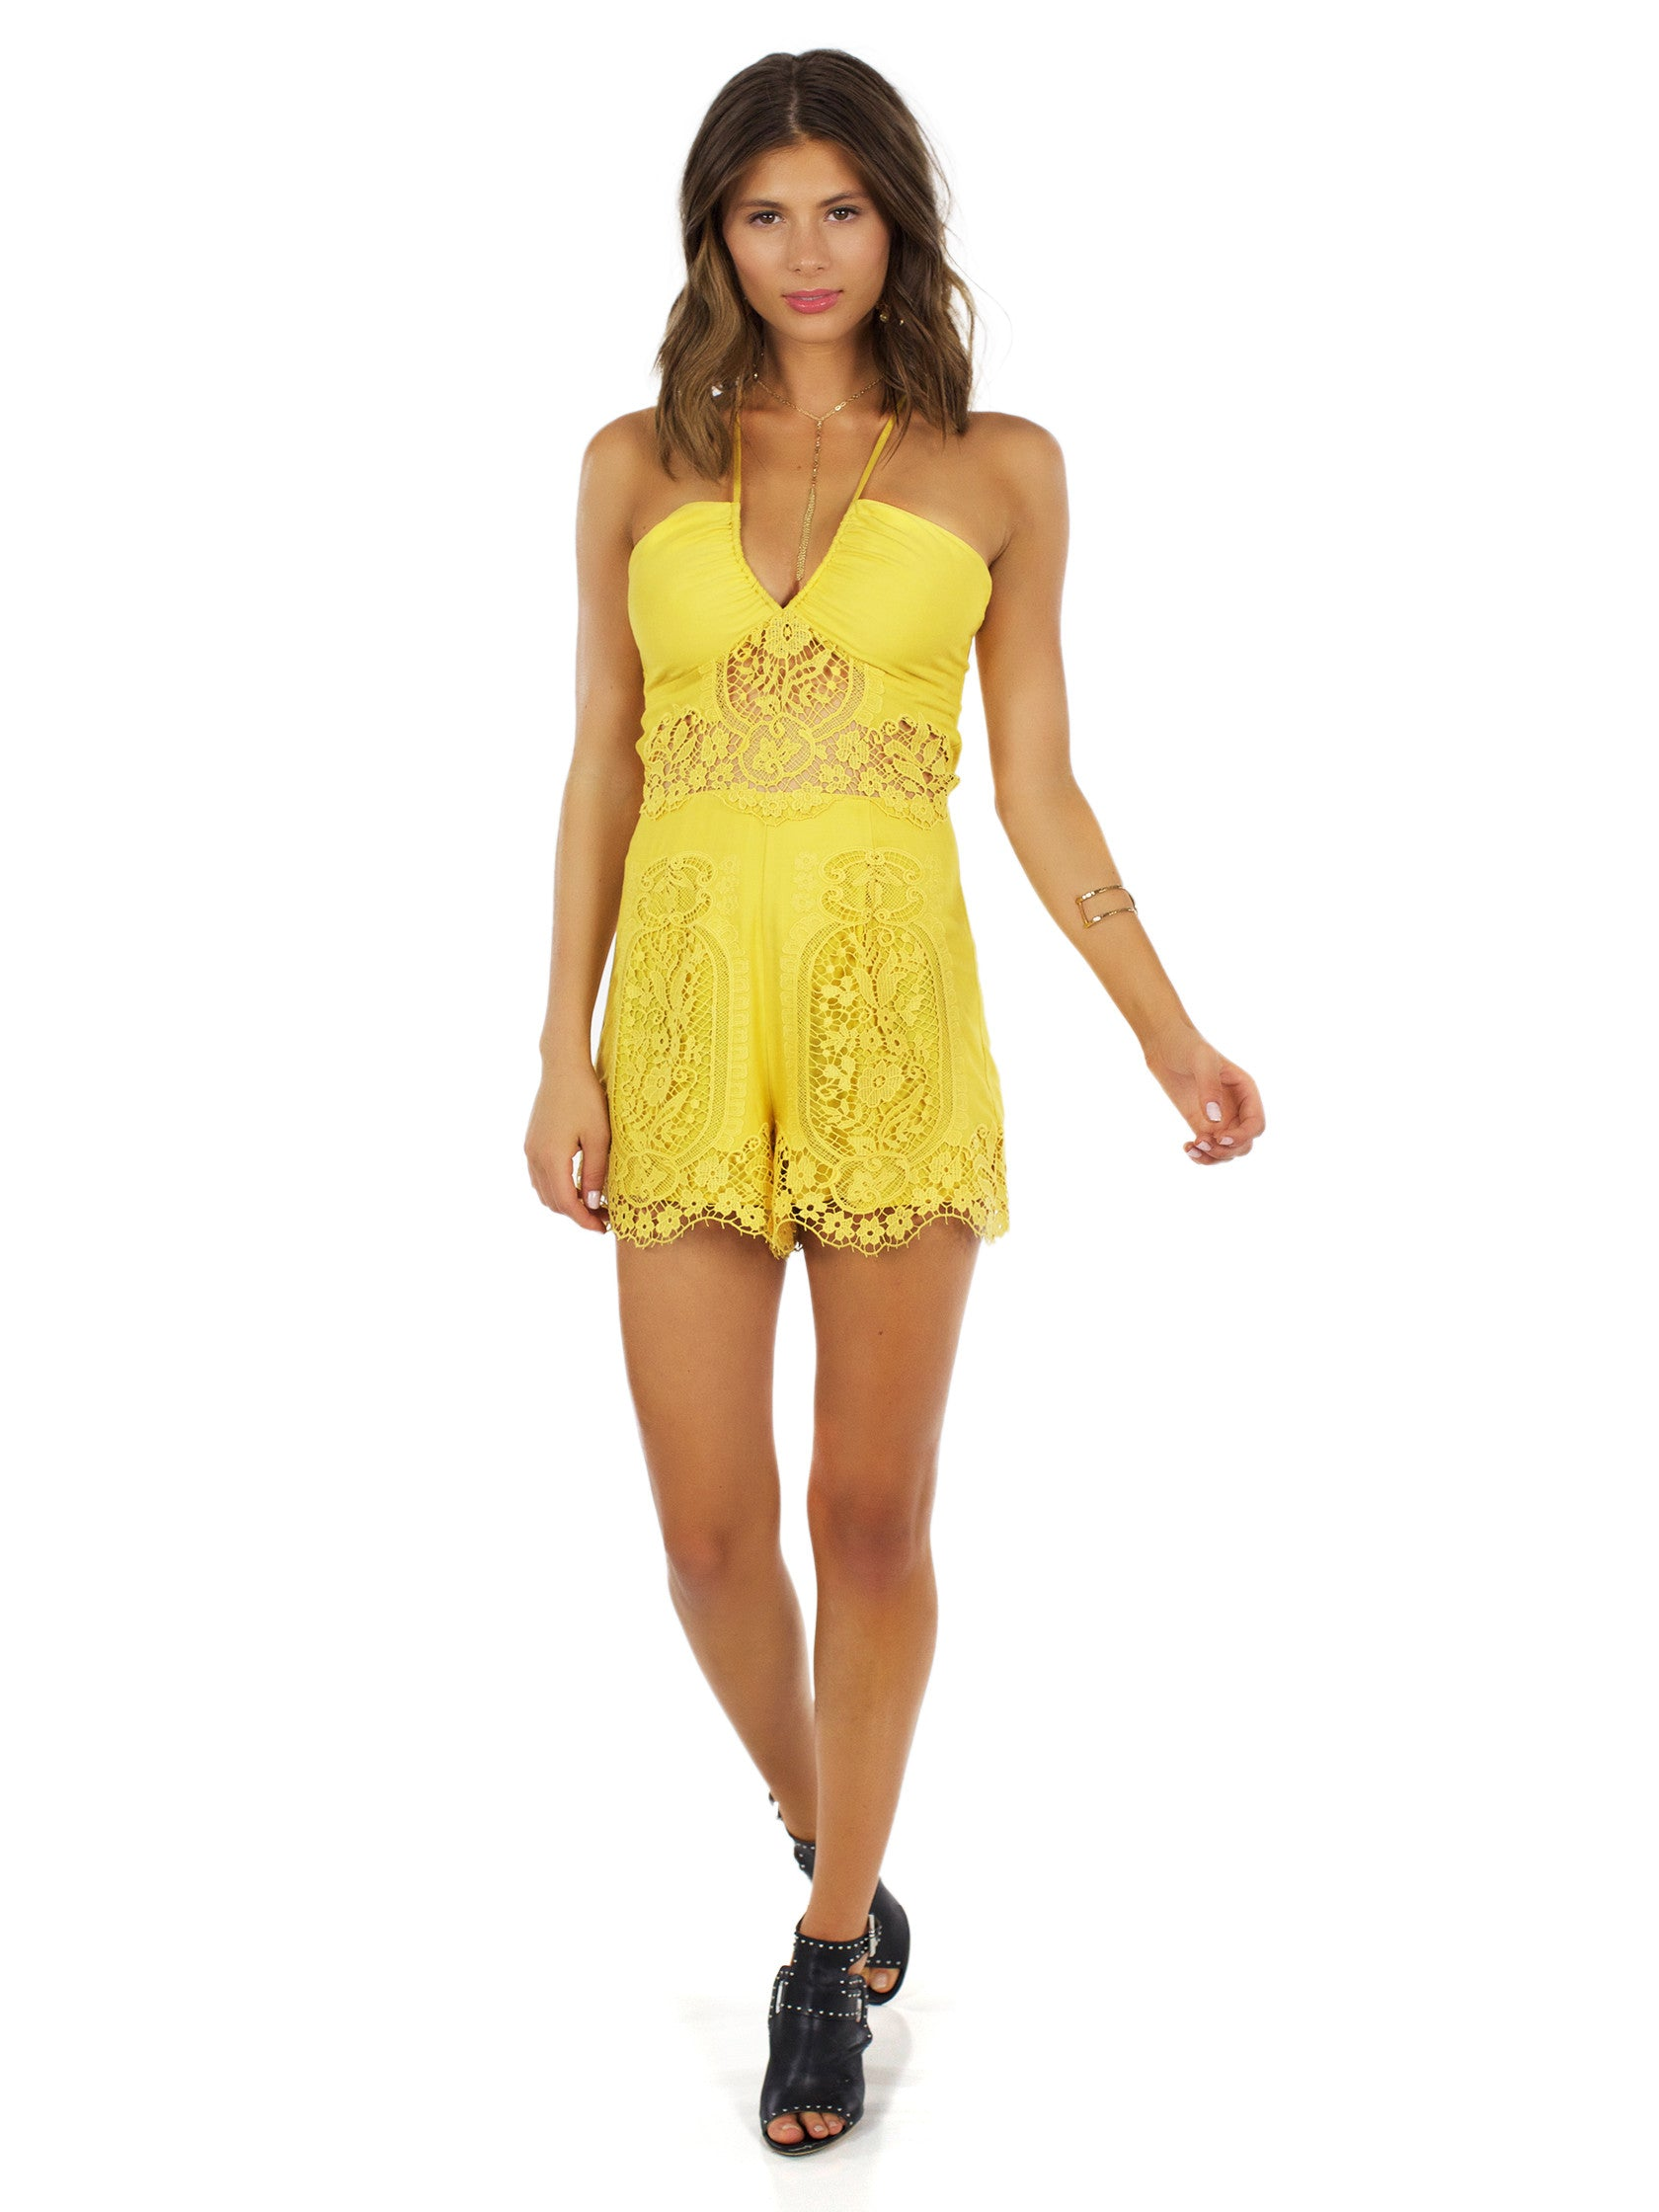 Woman wearing a romper rental from Nightcap Clothing called Cheeky Playsuit